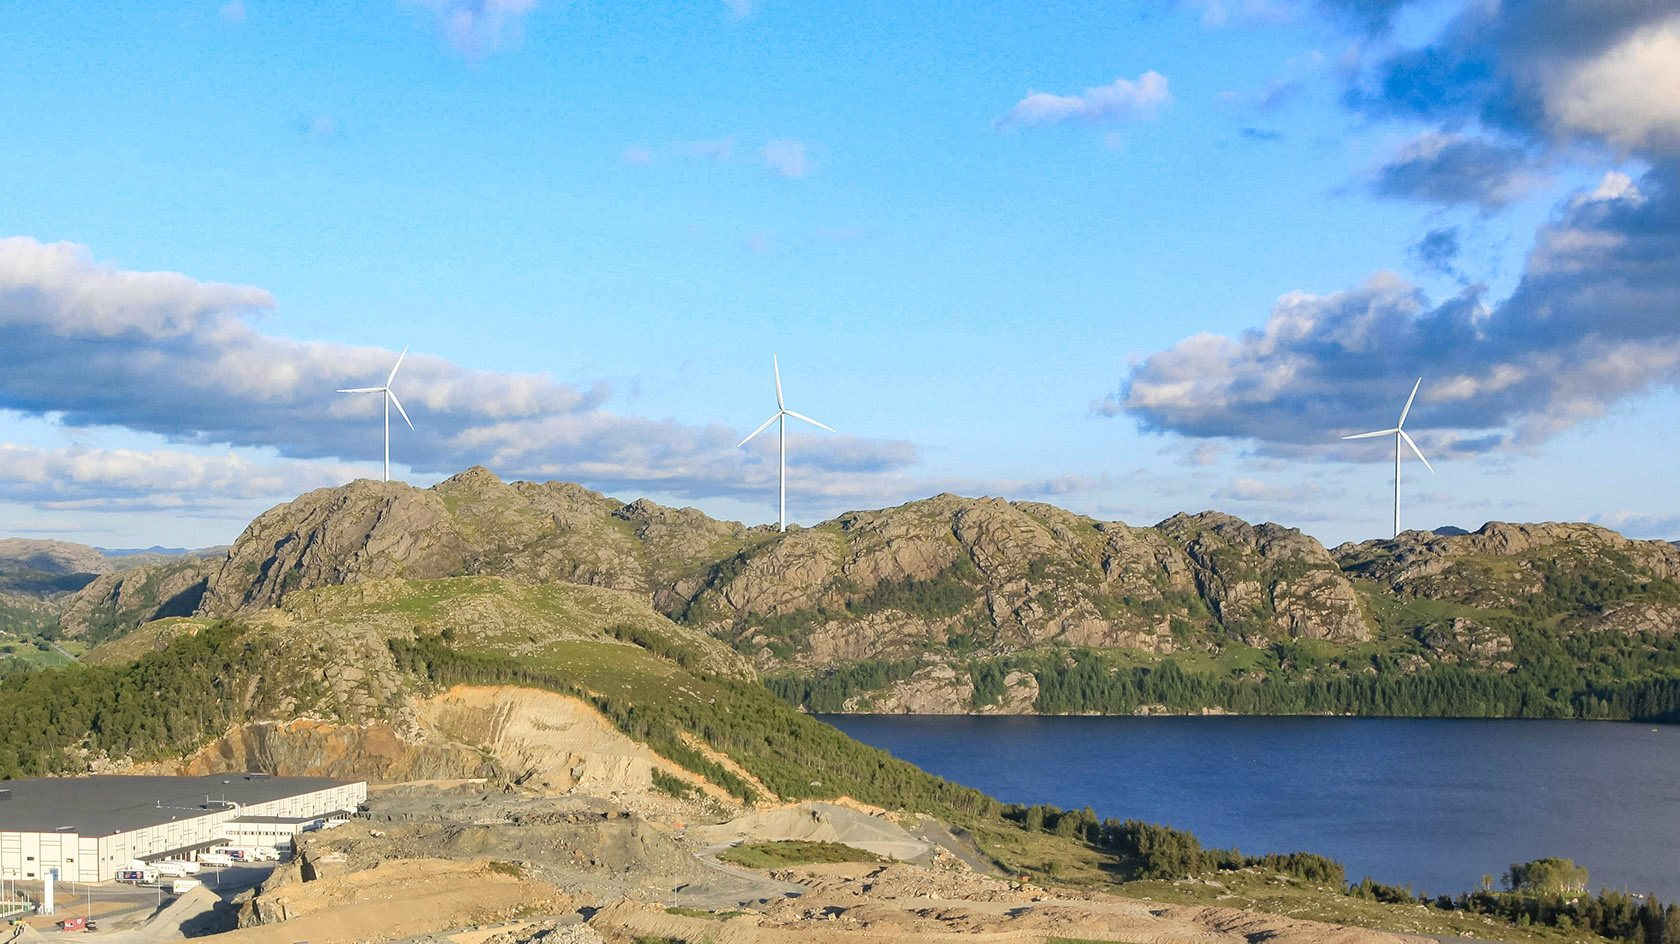 Peikko's rock foundation solutions is tailored to the project's need. Tindafjellet wind park will be built with both components and design by Peikko.